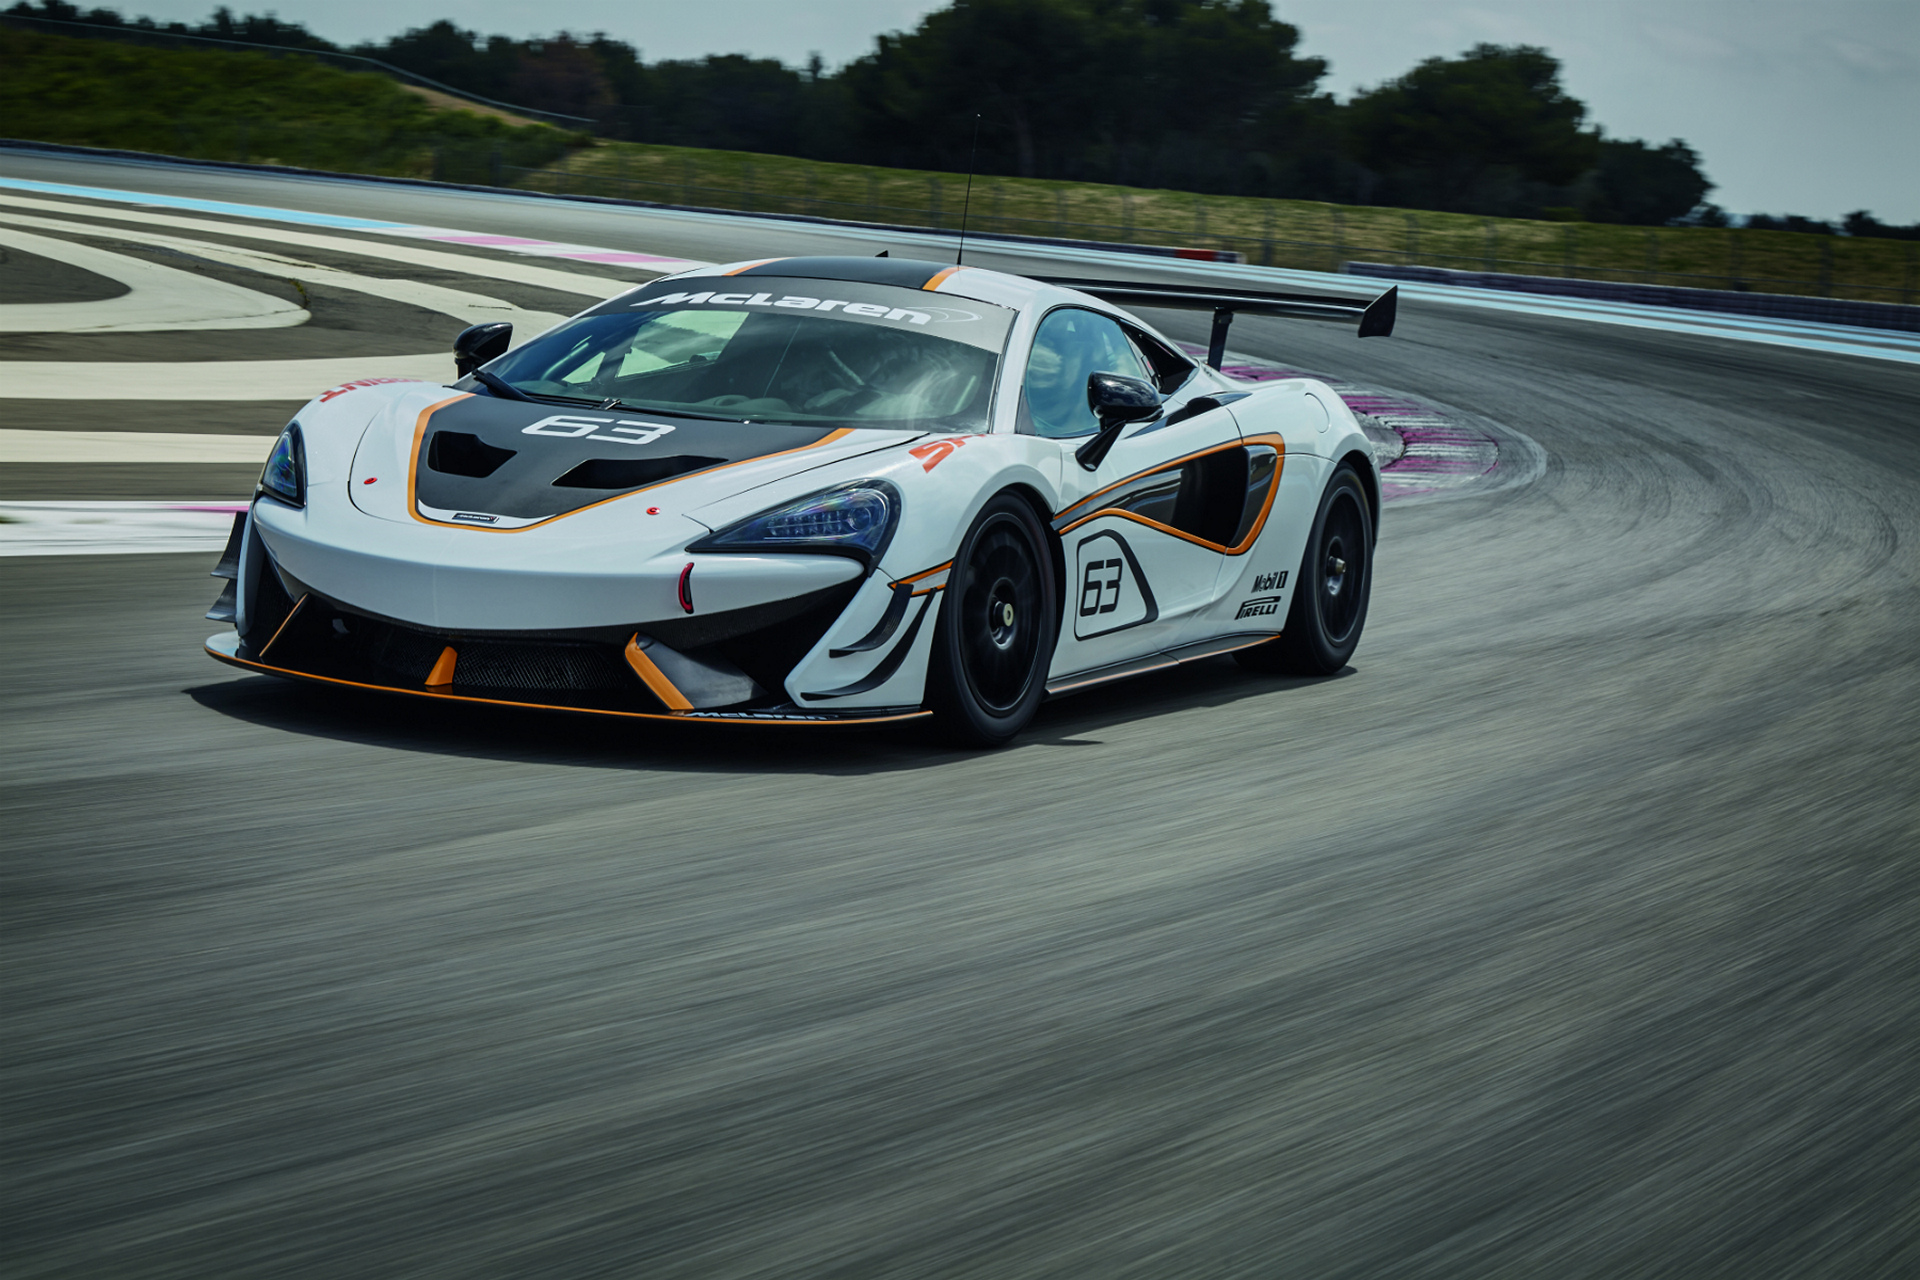 McLaren 570S Sprint © McLaren Automotive